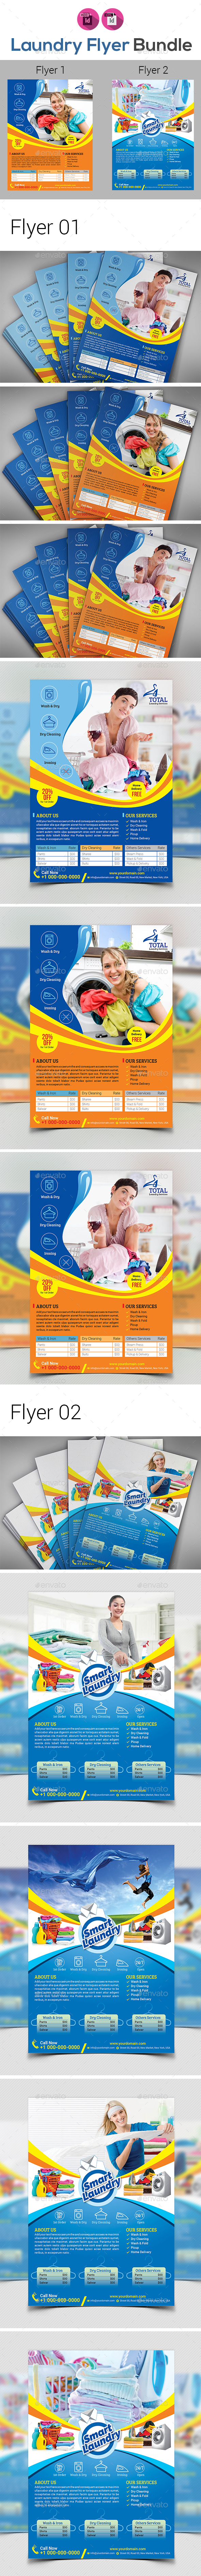 Laundry & Dry Cleaning Services Flyer Bundle V2 - Flyers Print Templates